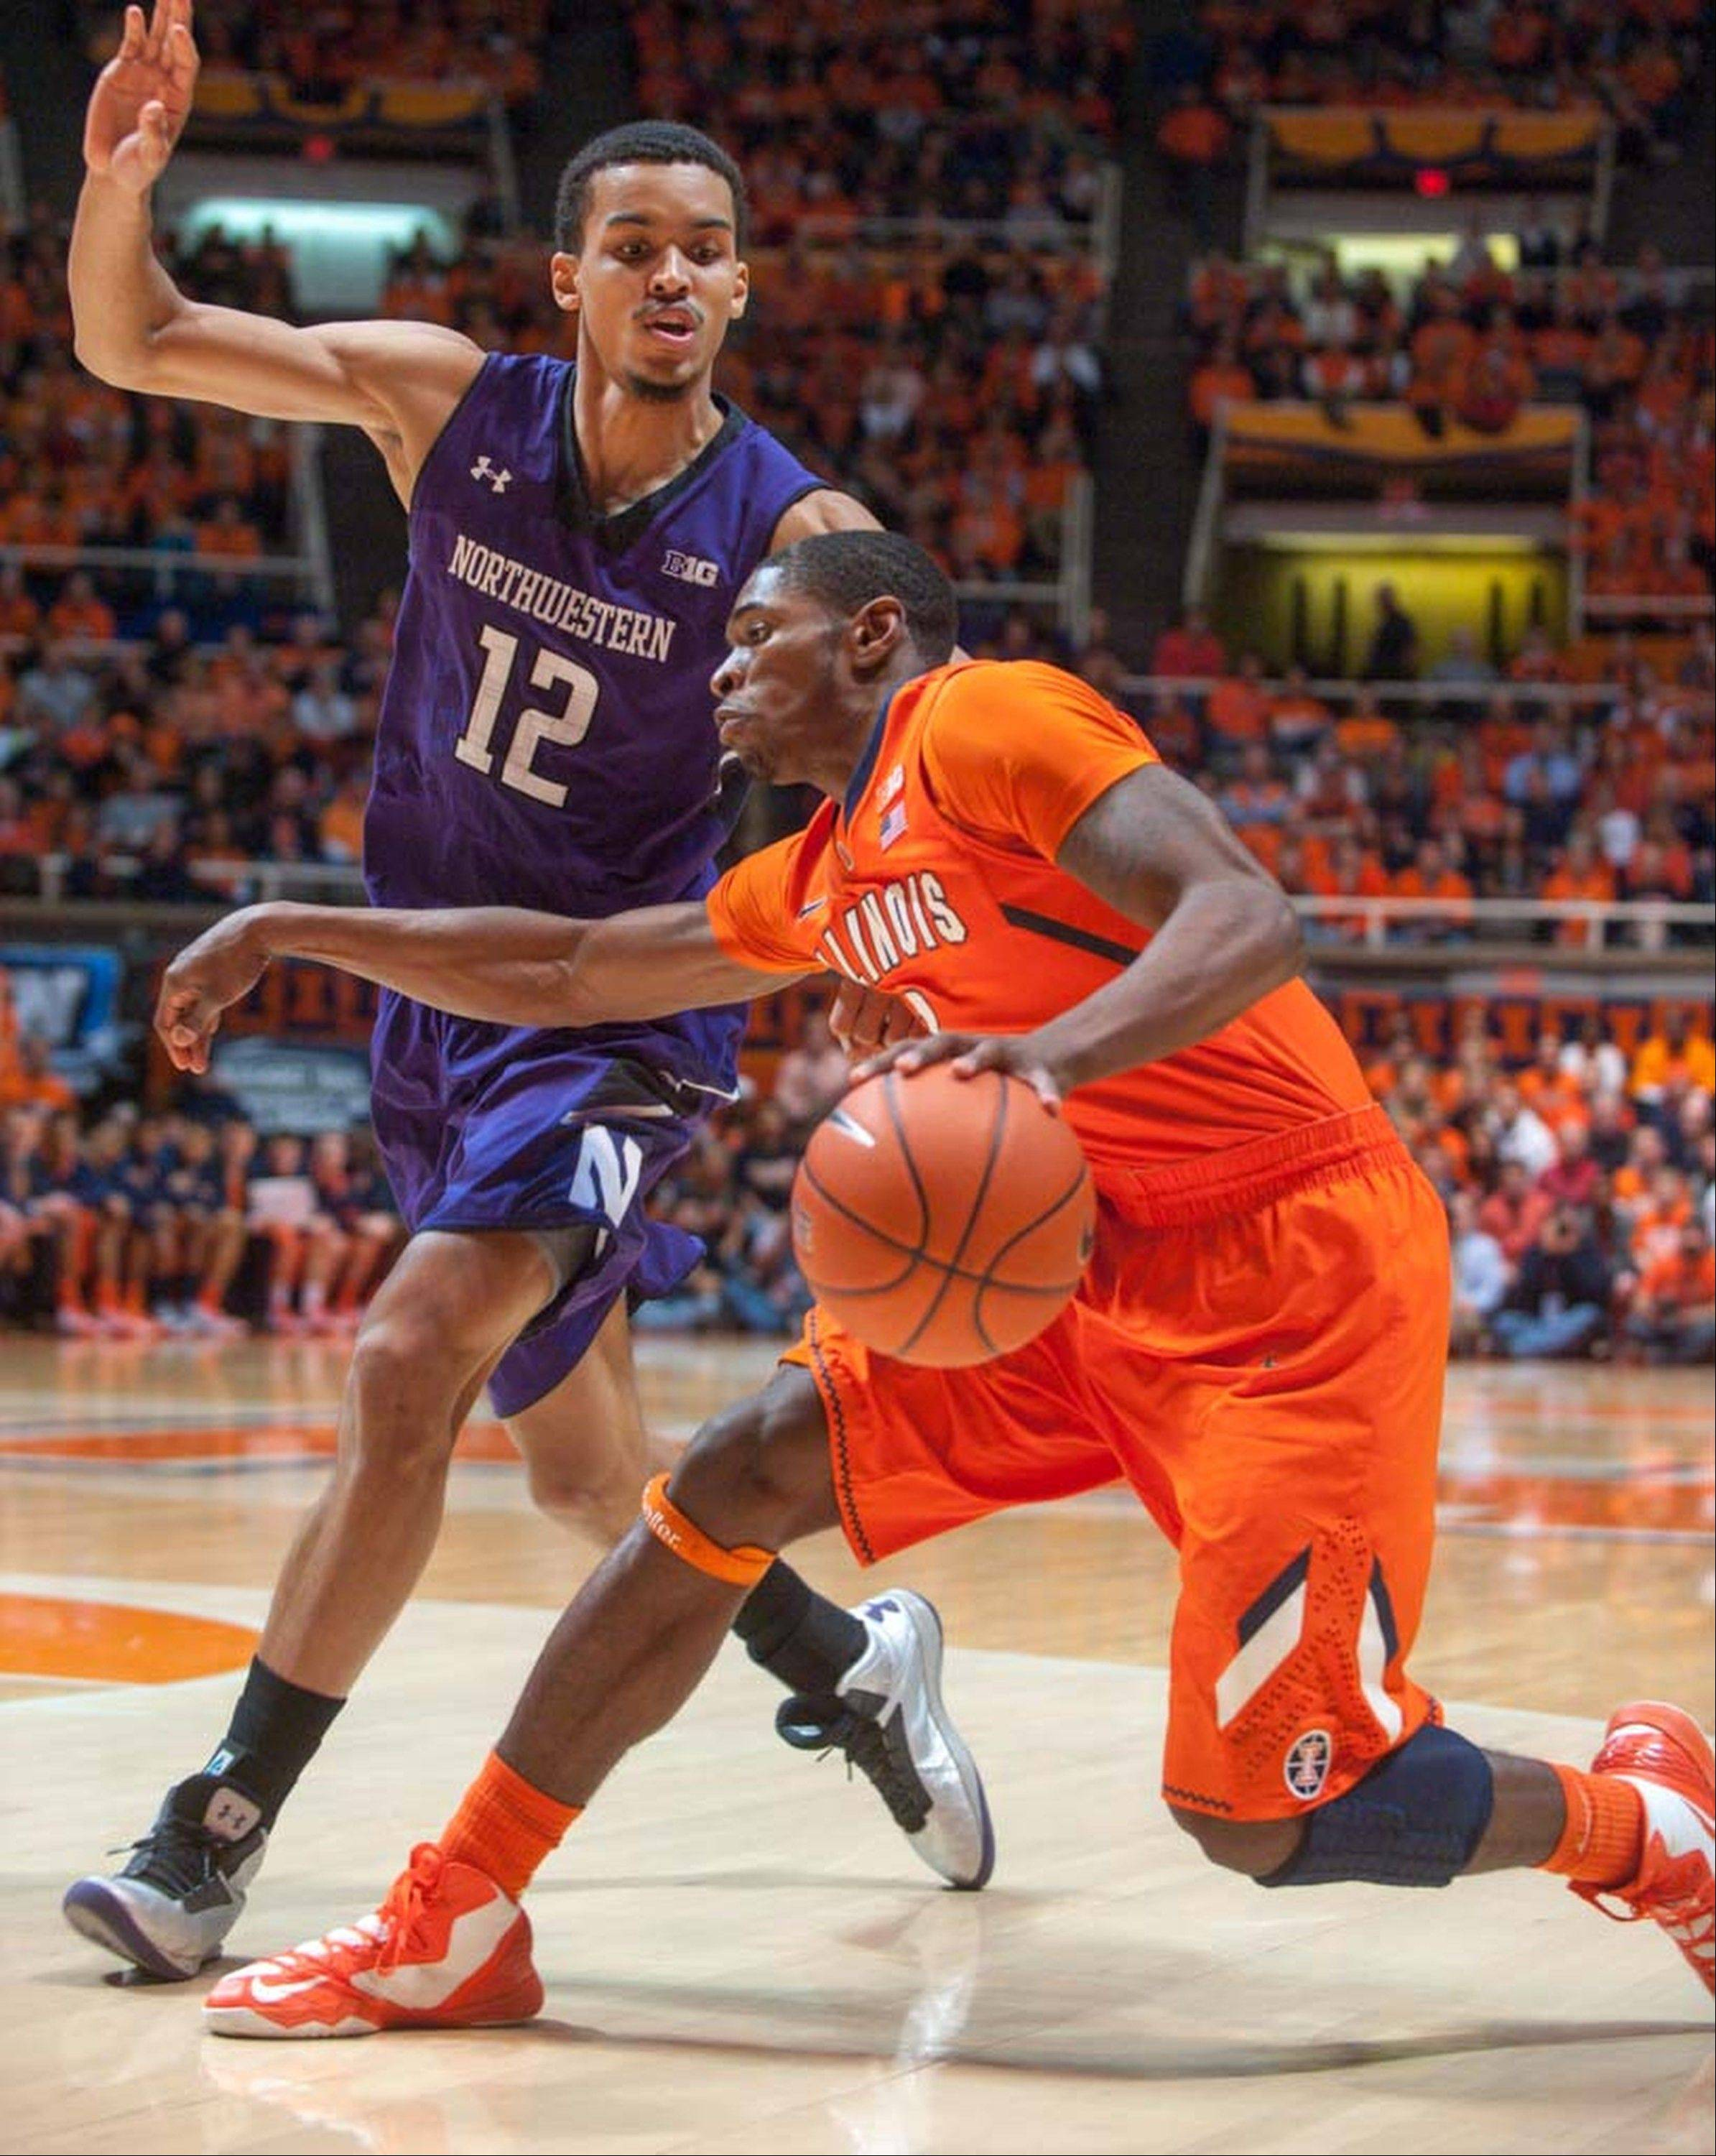 Illinois guard Brandon Paul, right, tries to move past Northwestern forward Jared Swopshire (12) during Thursday night's game between the Illini and the Wildcats. Illinois' 68-54 loss could cost the team its Top 25 ranking.